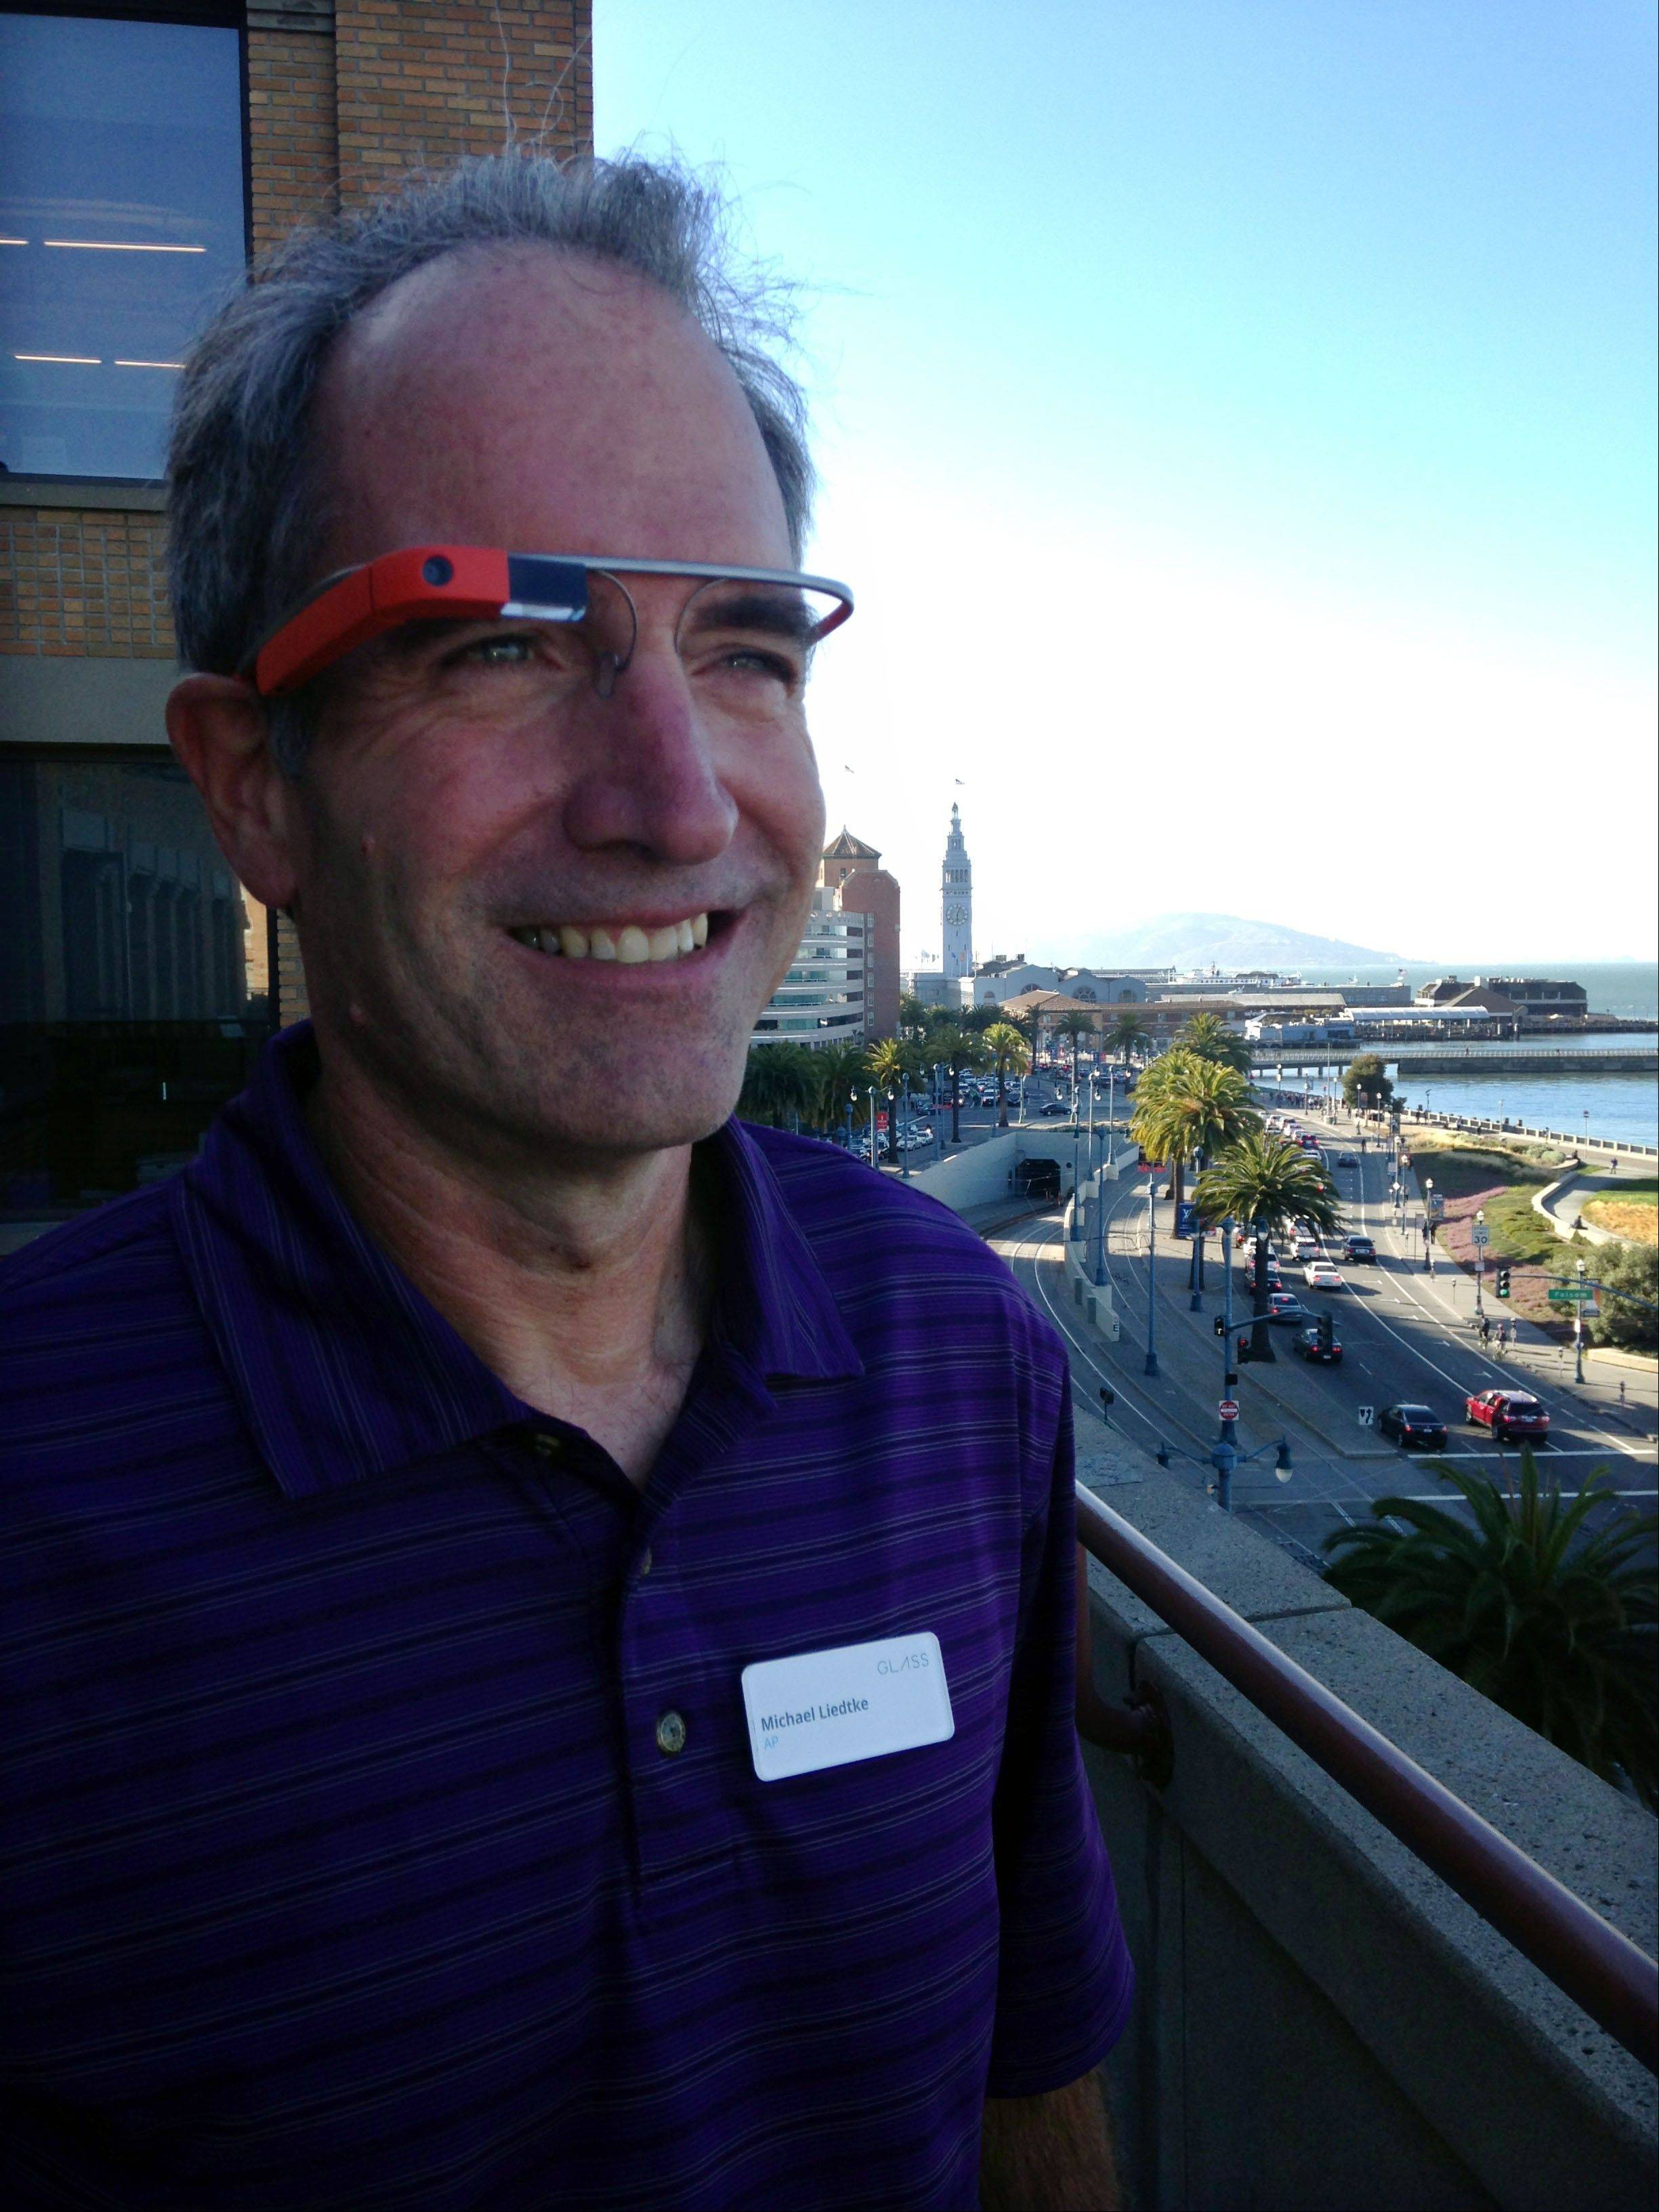 Associated Press reporter Michael Liedtke models Google glass at a Google base camp in San Francisco. Google Inc. is touting Glass as a liberating breakthrough that will make technology more convenient and less obnoxious in social situations than checking a smartphone to see what's happening in your digital realm. Critics deride Glass as another disturbing example of a how enslaved people are to their devices and a sign that technology is obliterating personal privacy.